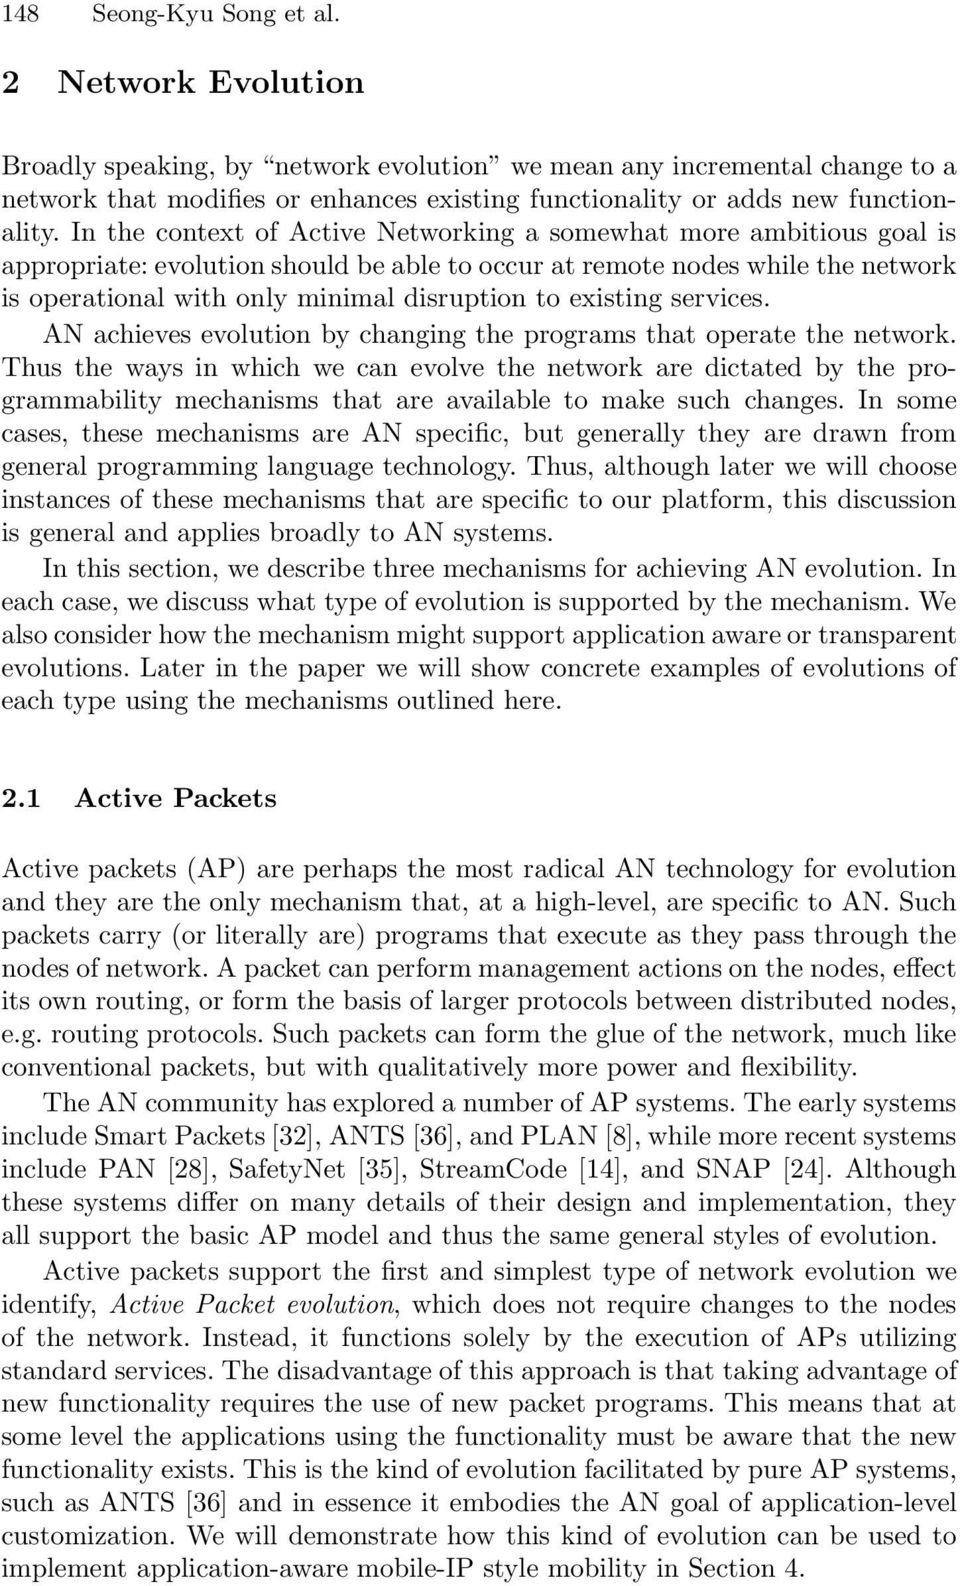 In the context of Active Networking a somewhat more ambitious goal is appropriate: evolution should be able to occur at remote nodes while the network is operational with only minimal disruption to